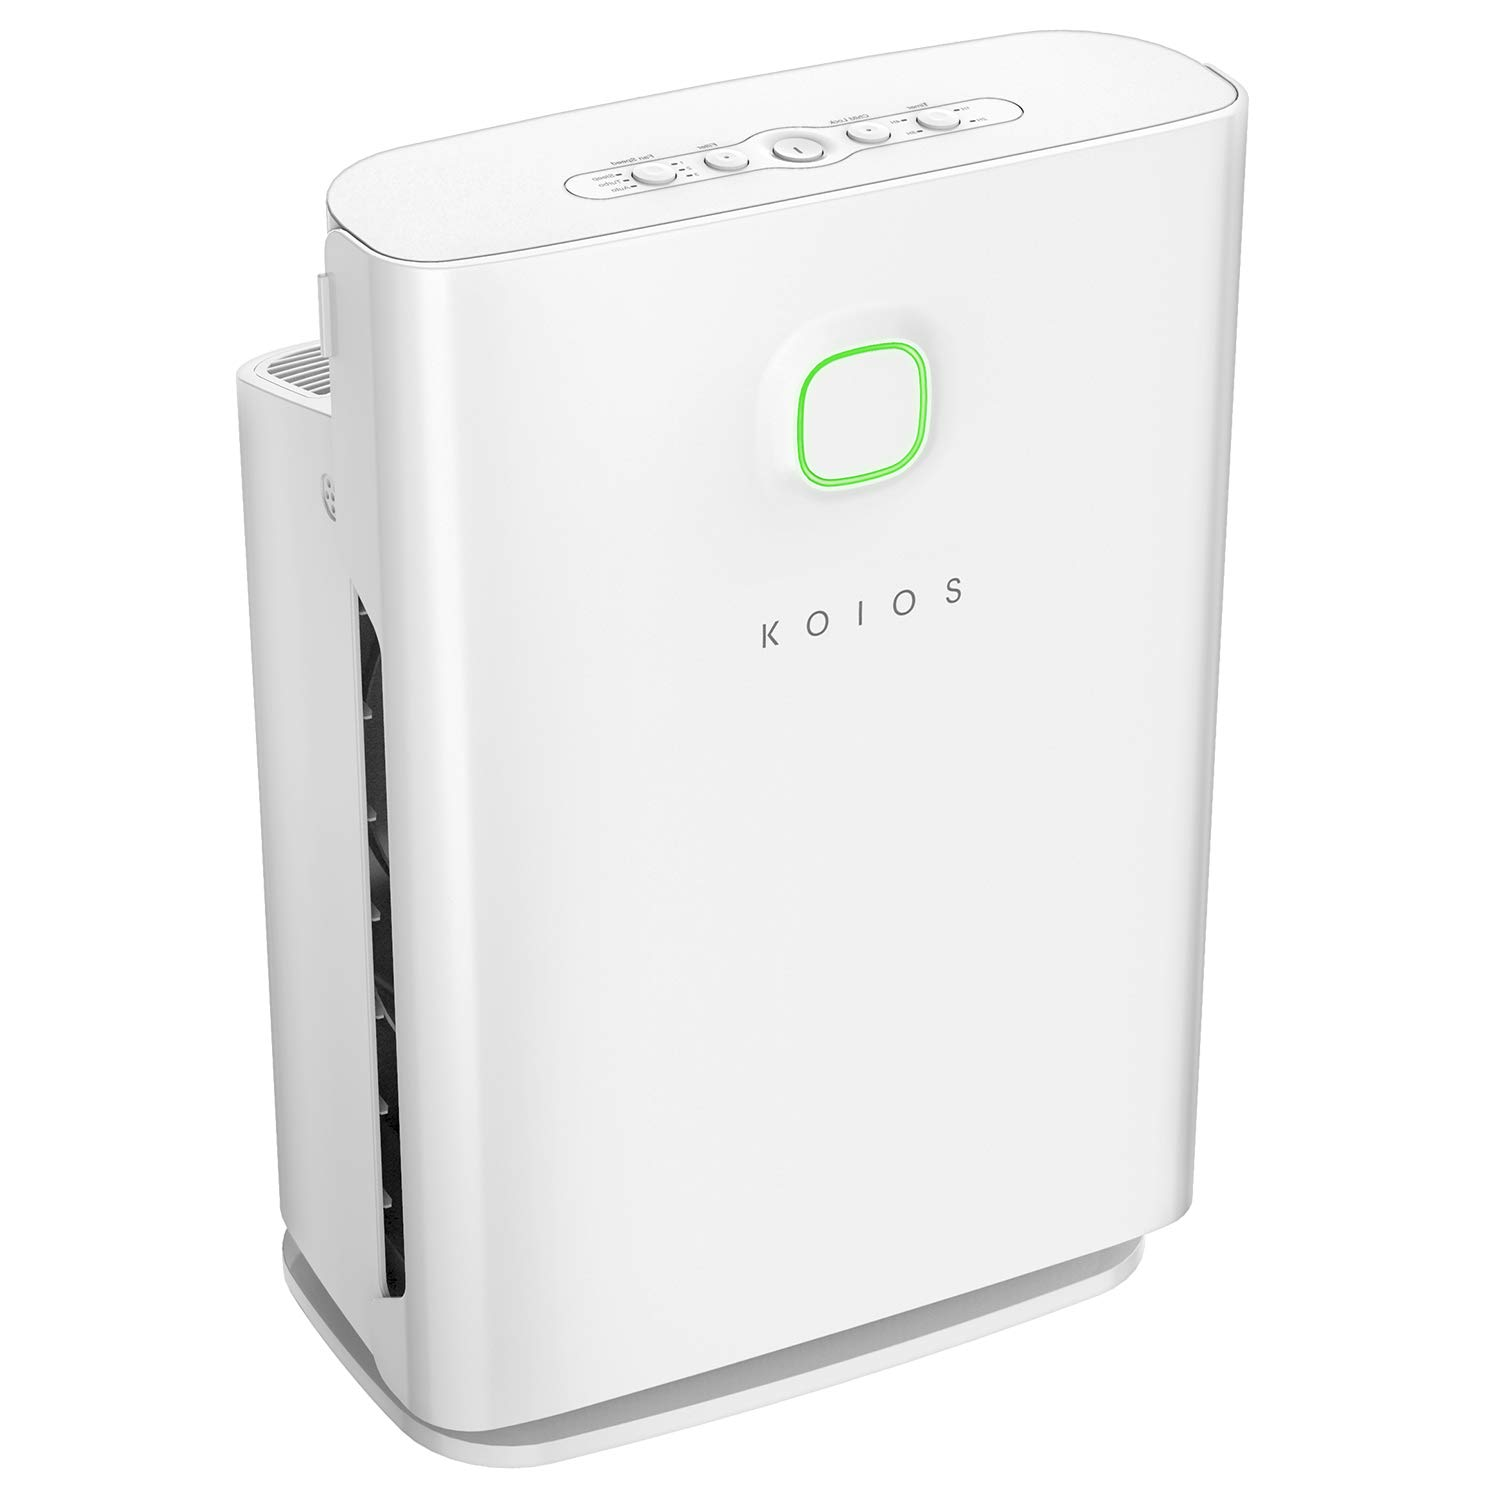 Koios Air Purifier with True HEPA Filter, Allergies Eliminator Air Cleaner for Large Rooms, Home, Dust & Pollen, Smoke and Pet Dander, 100% Ozone Free (Air Purifier White)